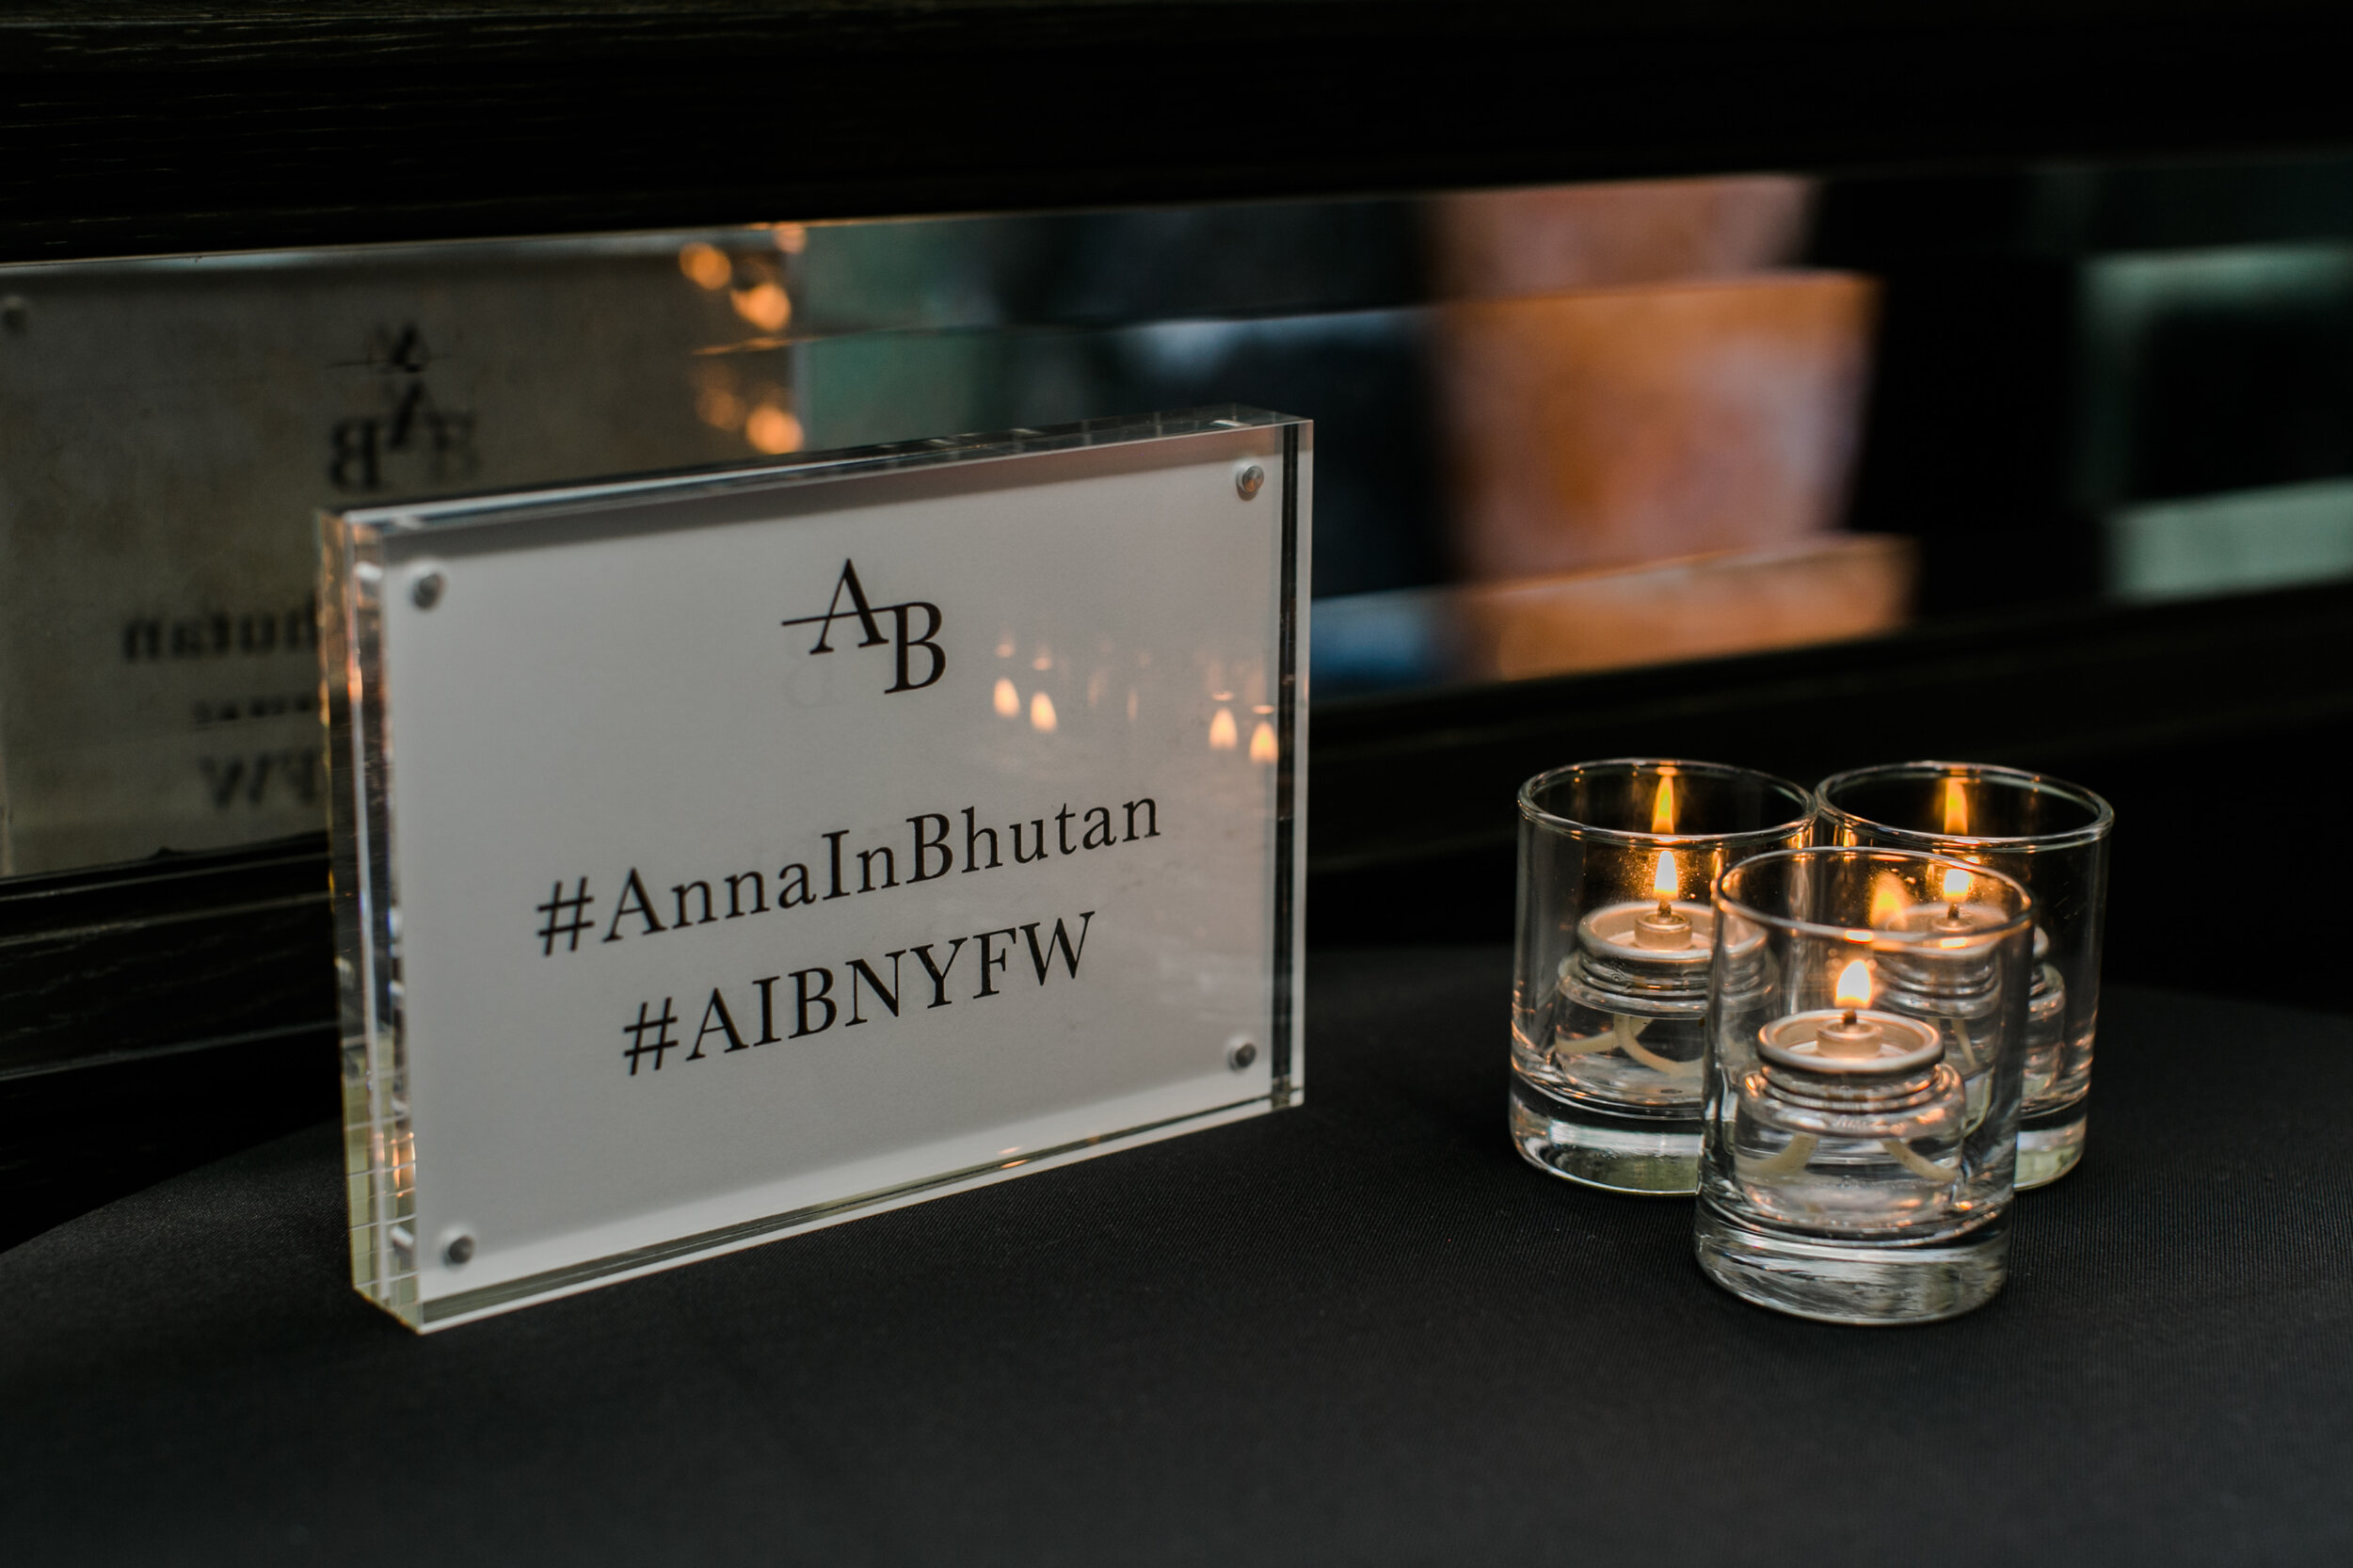 New-York-Fashion-Week-Launch-Party-Andrea-Freeman-Events-015.jpg